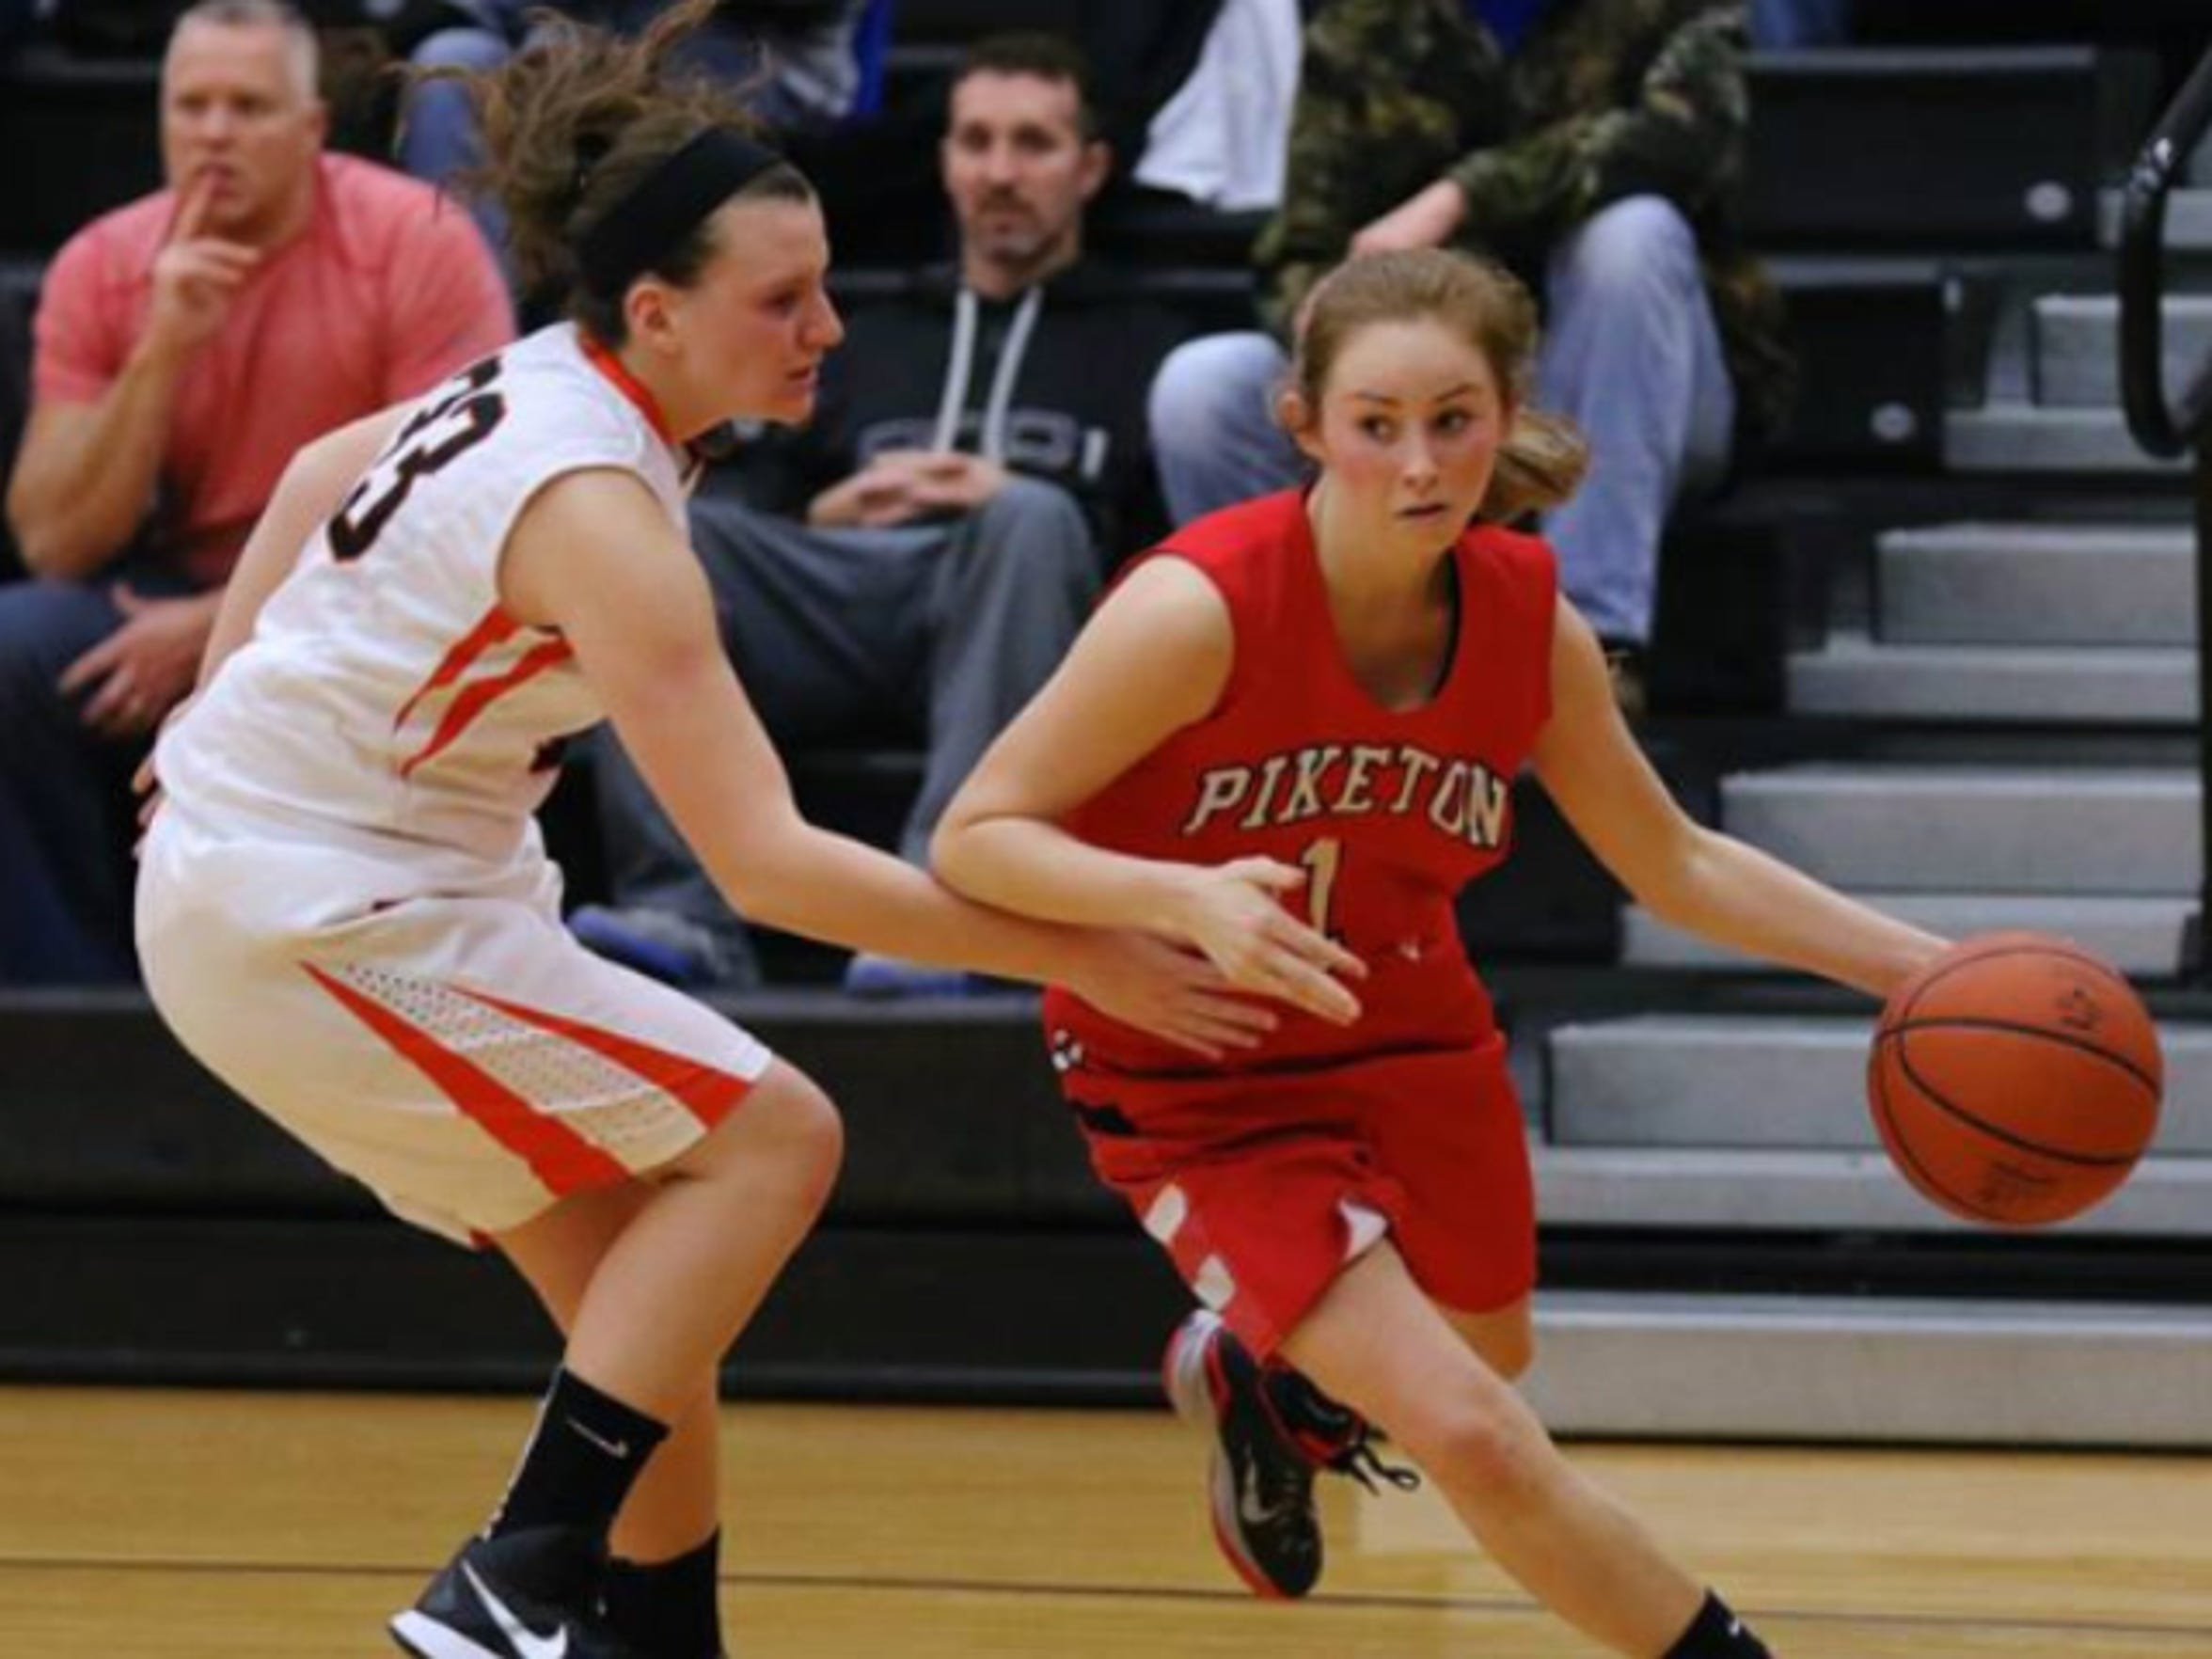 Piketon's Payton Reuter drives past a Waverly defender